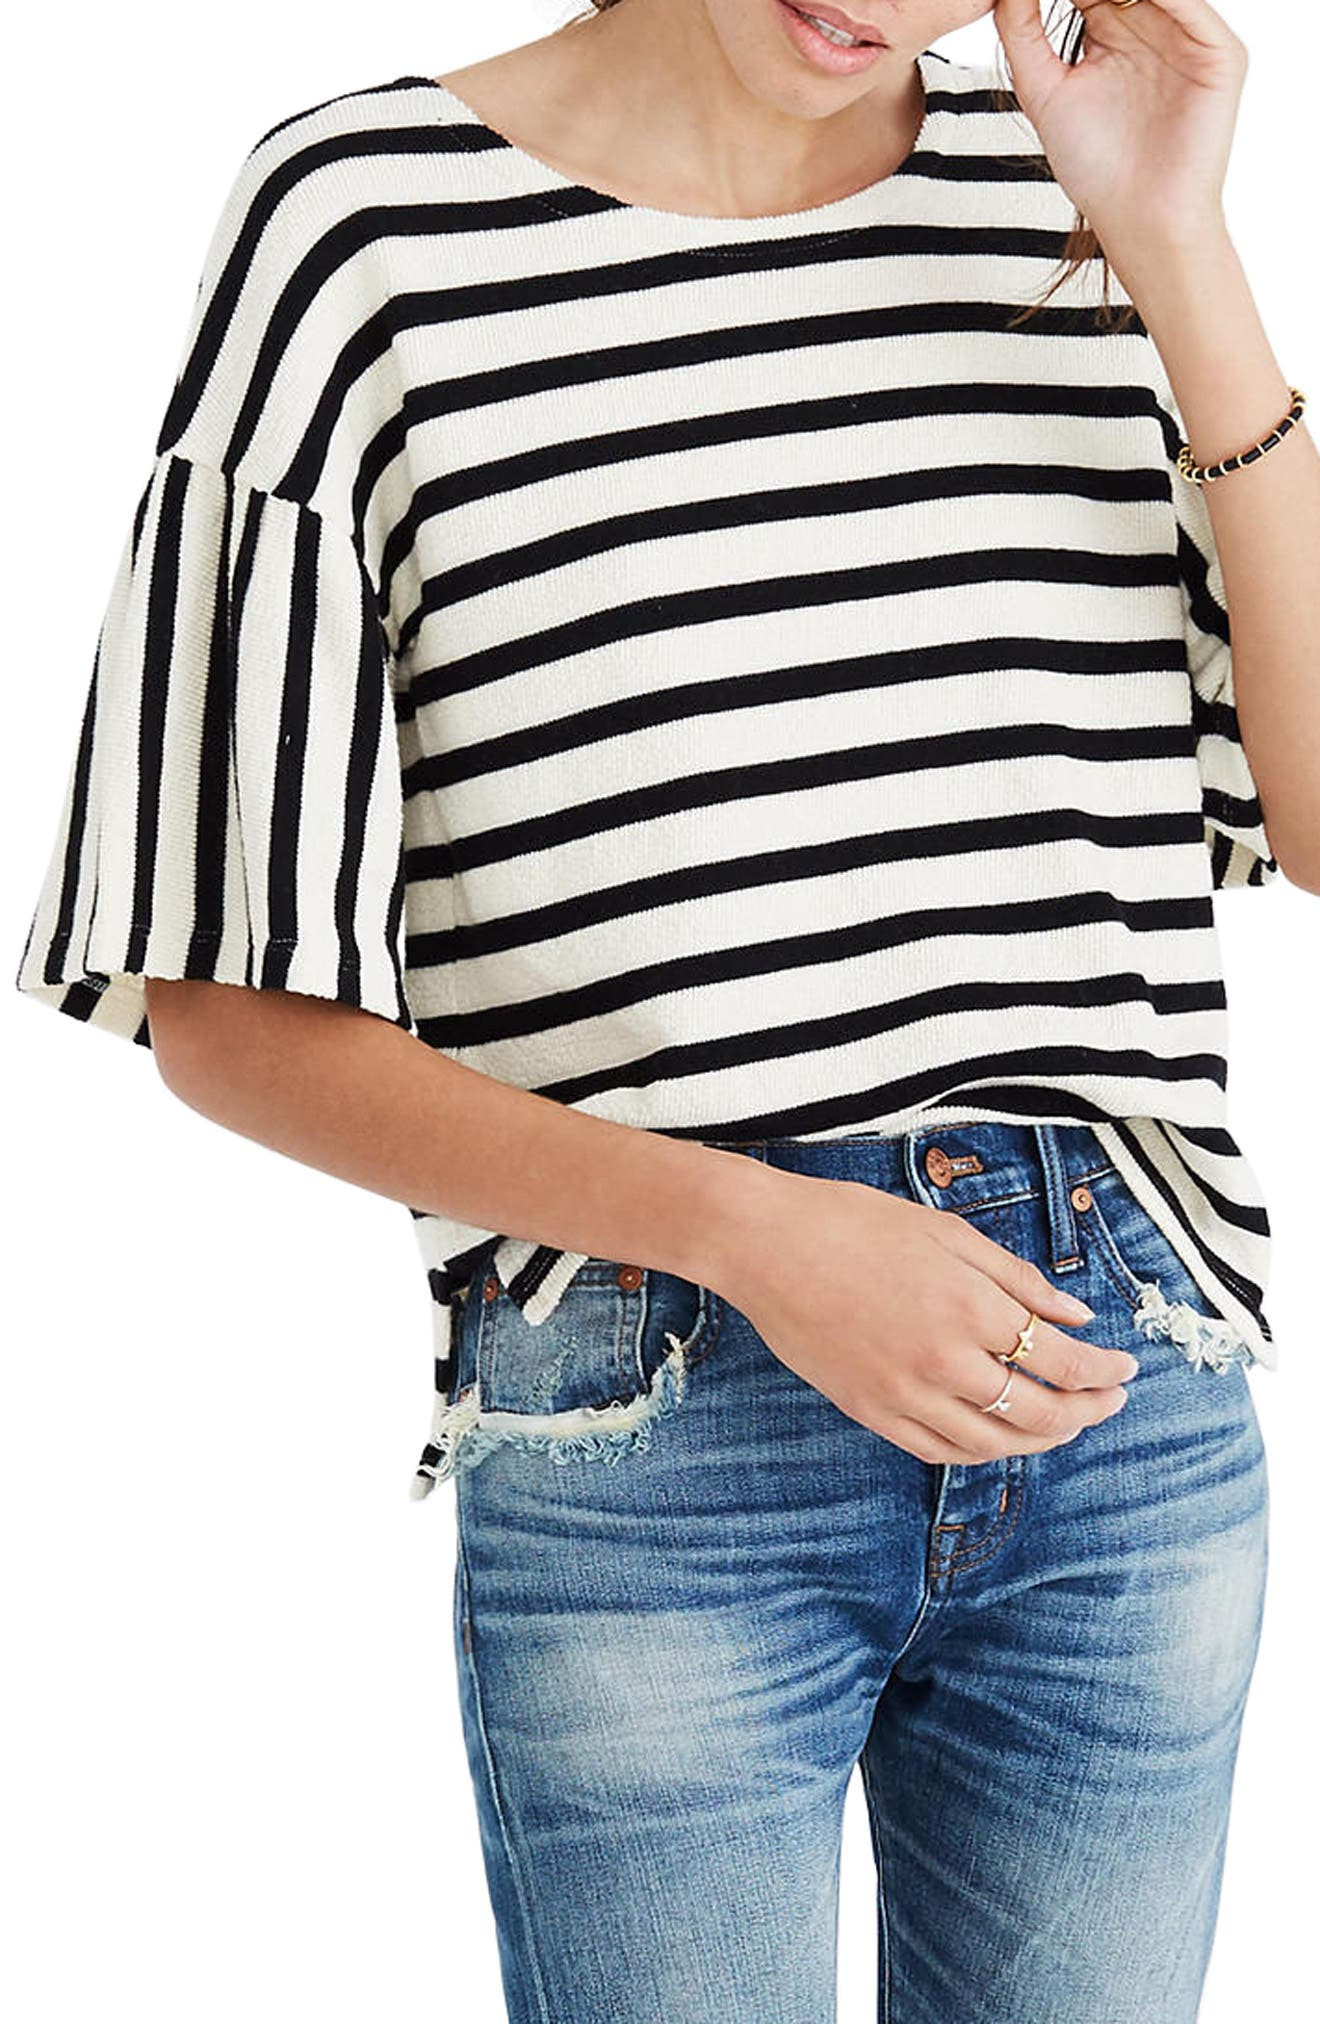 Alternate Image 1 Selected - Madewell Stripe Bell Sleeve Top